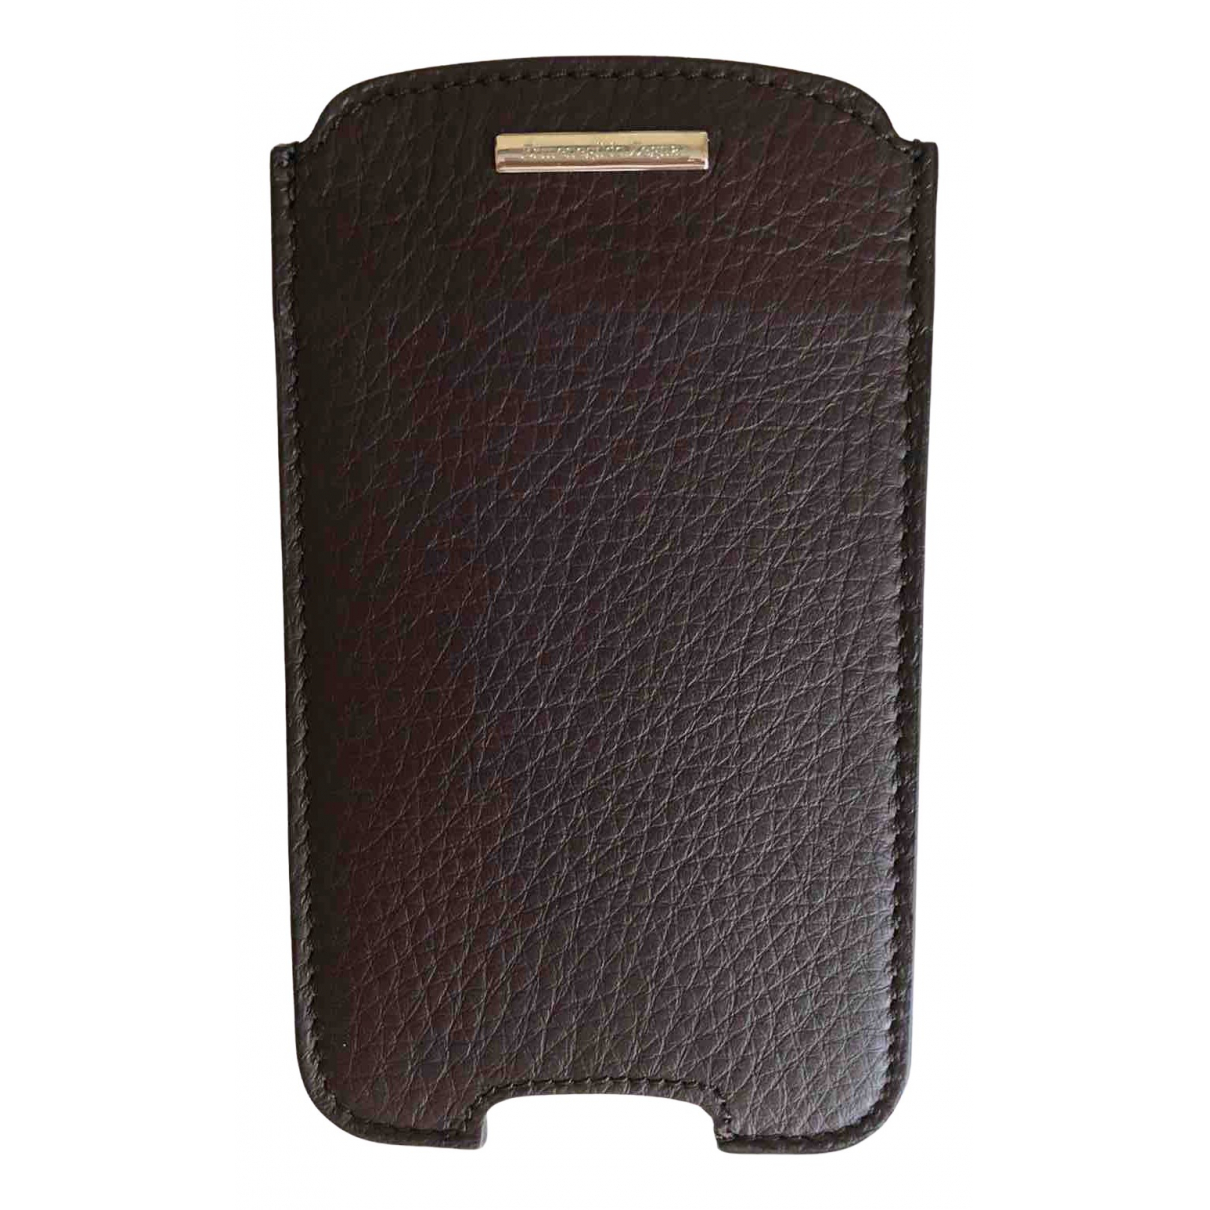 Ermenegildo Zegna \N Brown Leather Accessories for Life & Living \N